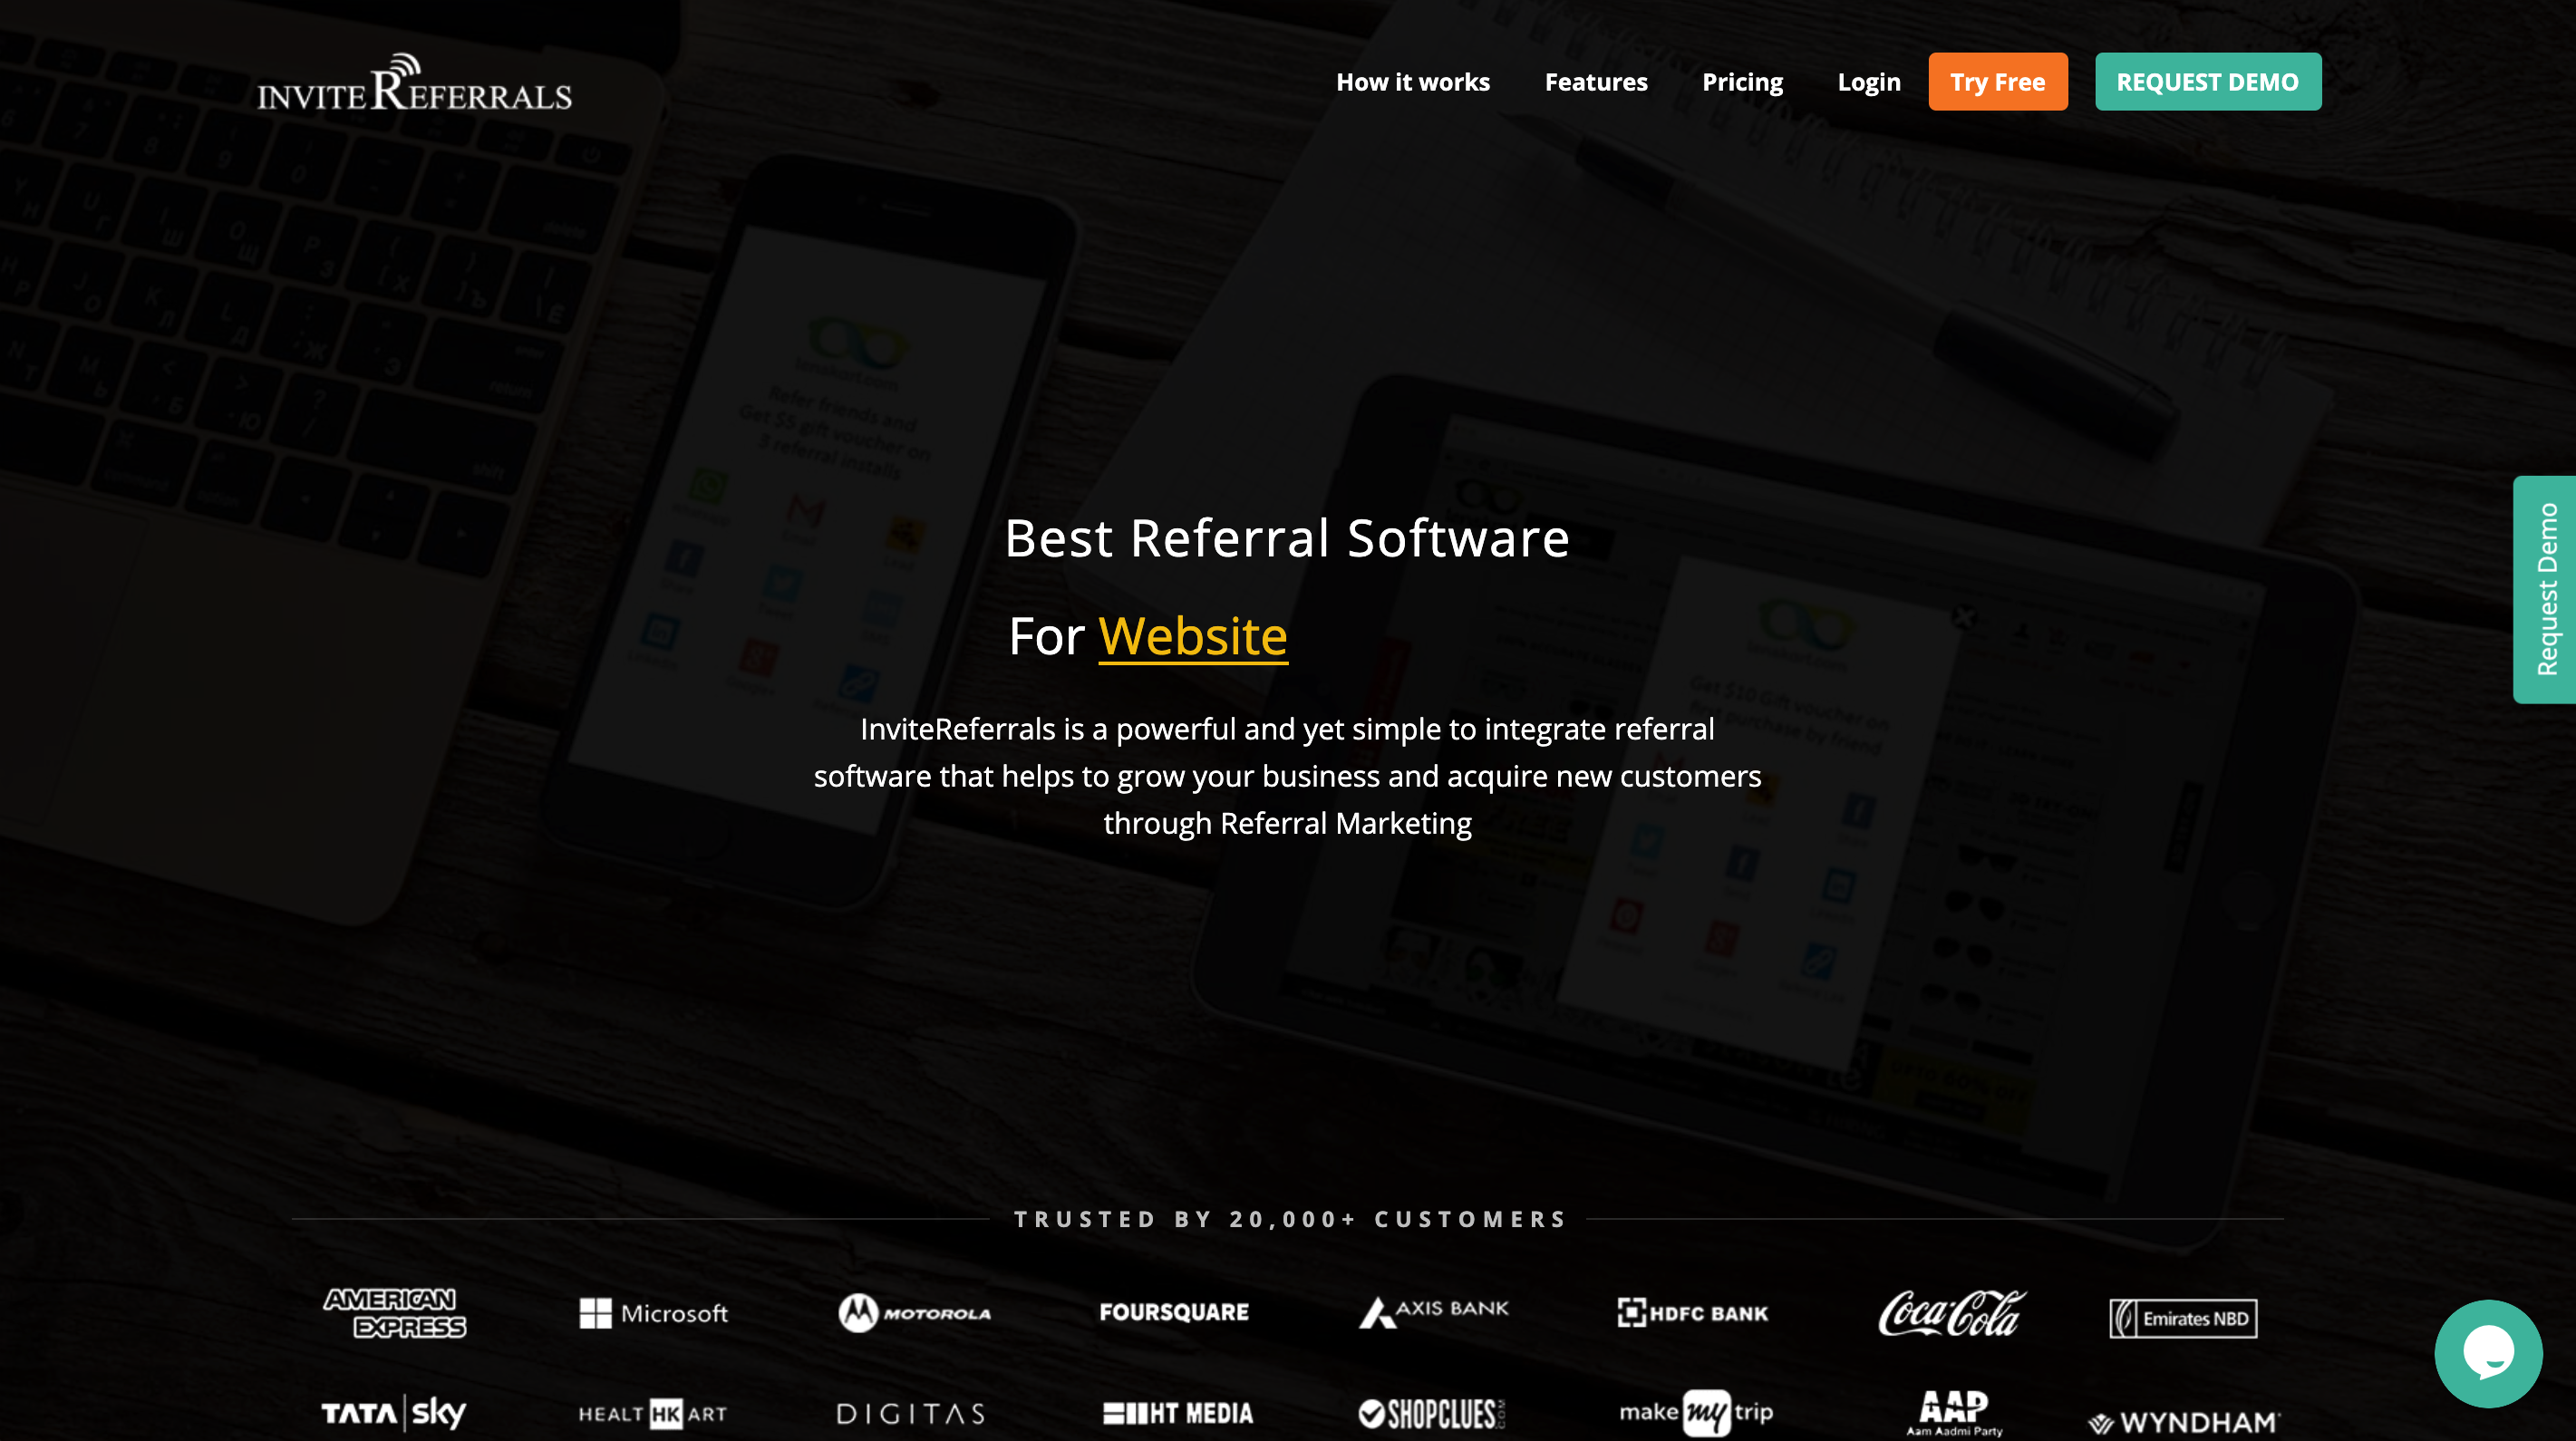 GrowSurf referral marketing software